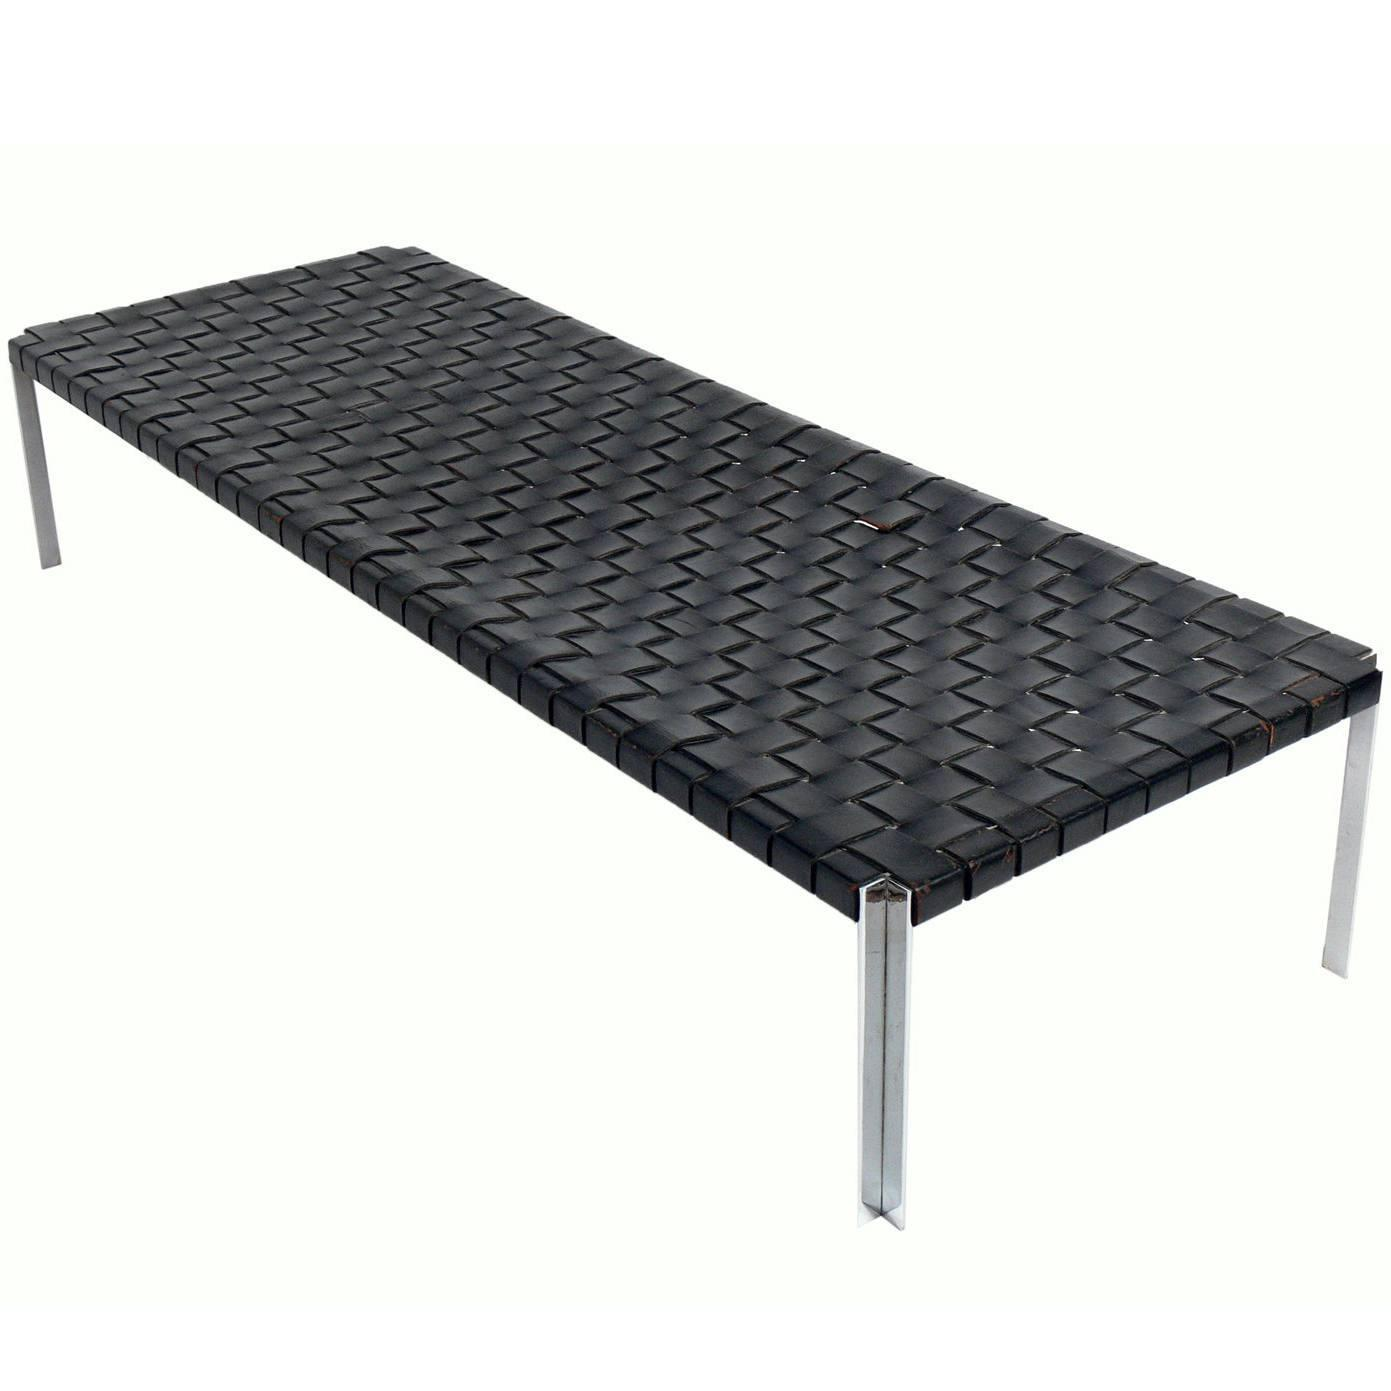 Jens risom floating bench for sale at 1stdibs - Large Scale Woven Leather And Chrome Daybed Bench By Erwine Estelle Laverne